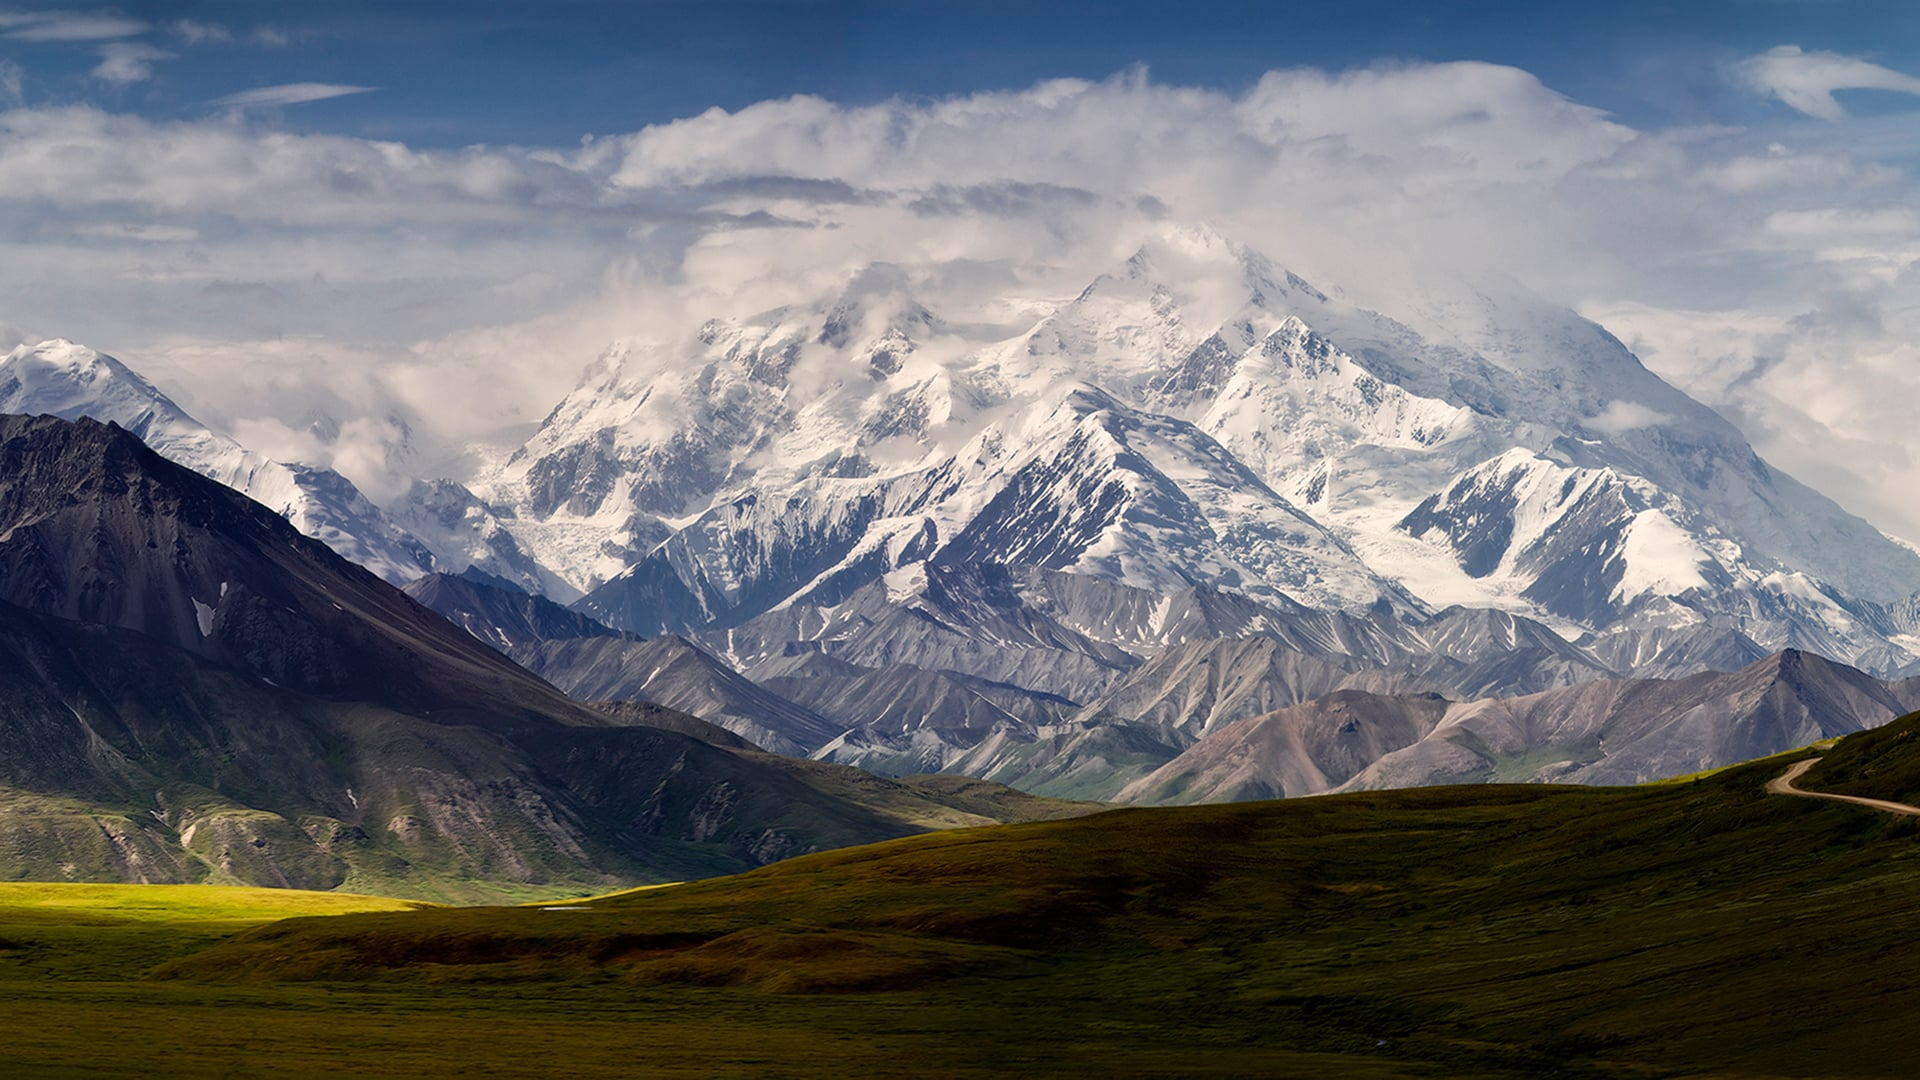 10+ Mount McKinley Denali wallpapers High Quality Download